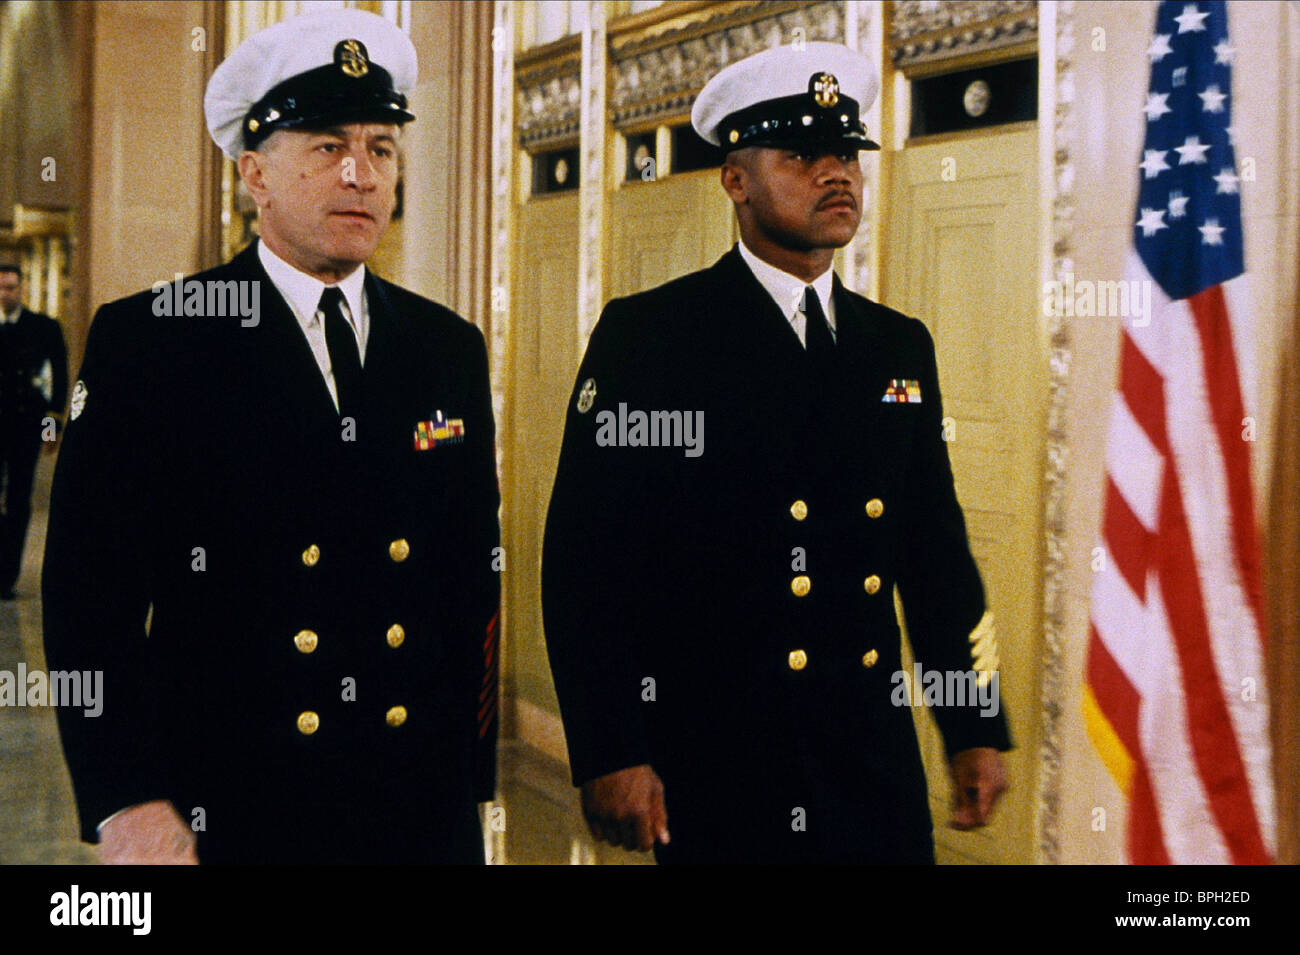 men of honor Man of honor 1,226 likes 37 talking about this you have served so that others may live you are a true man of honor.